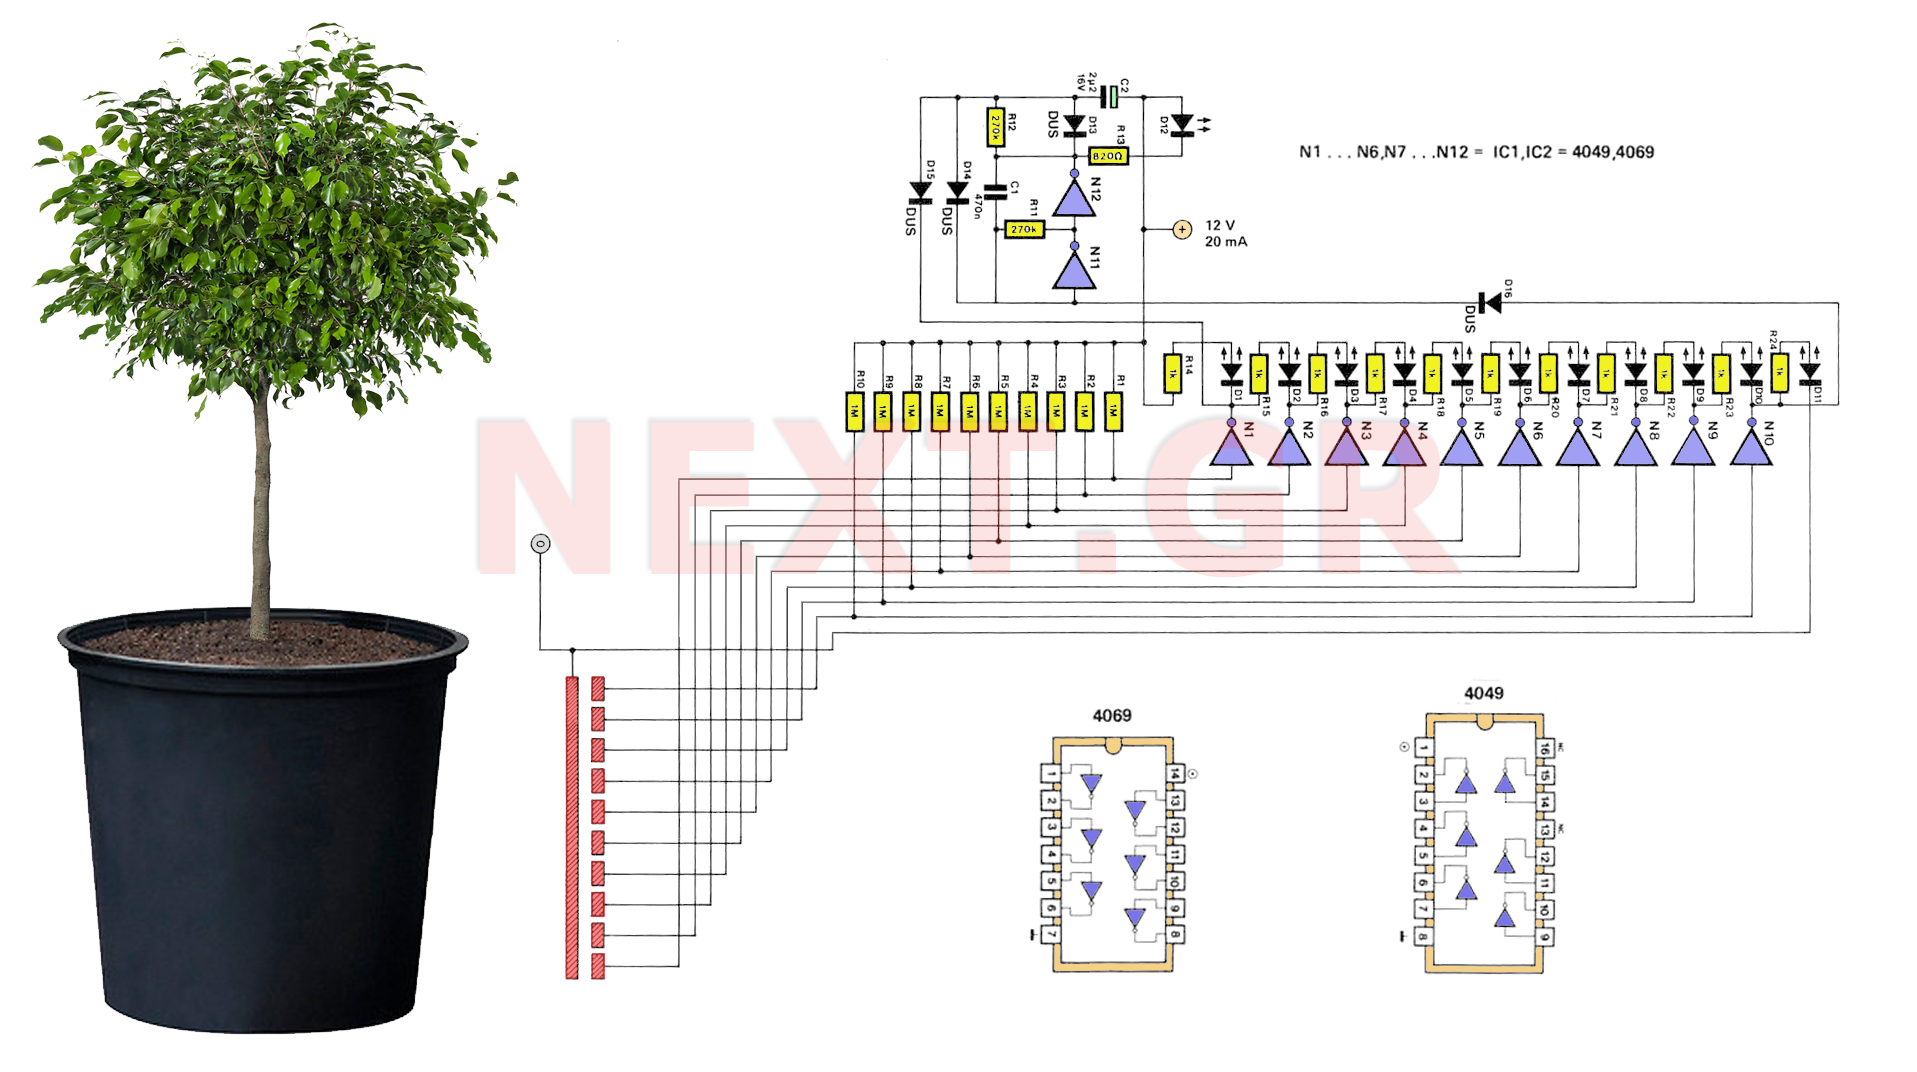 Plant-Pot Water Level Indicator Circuit